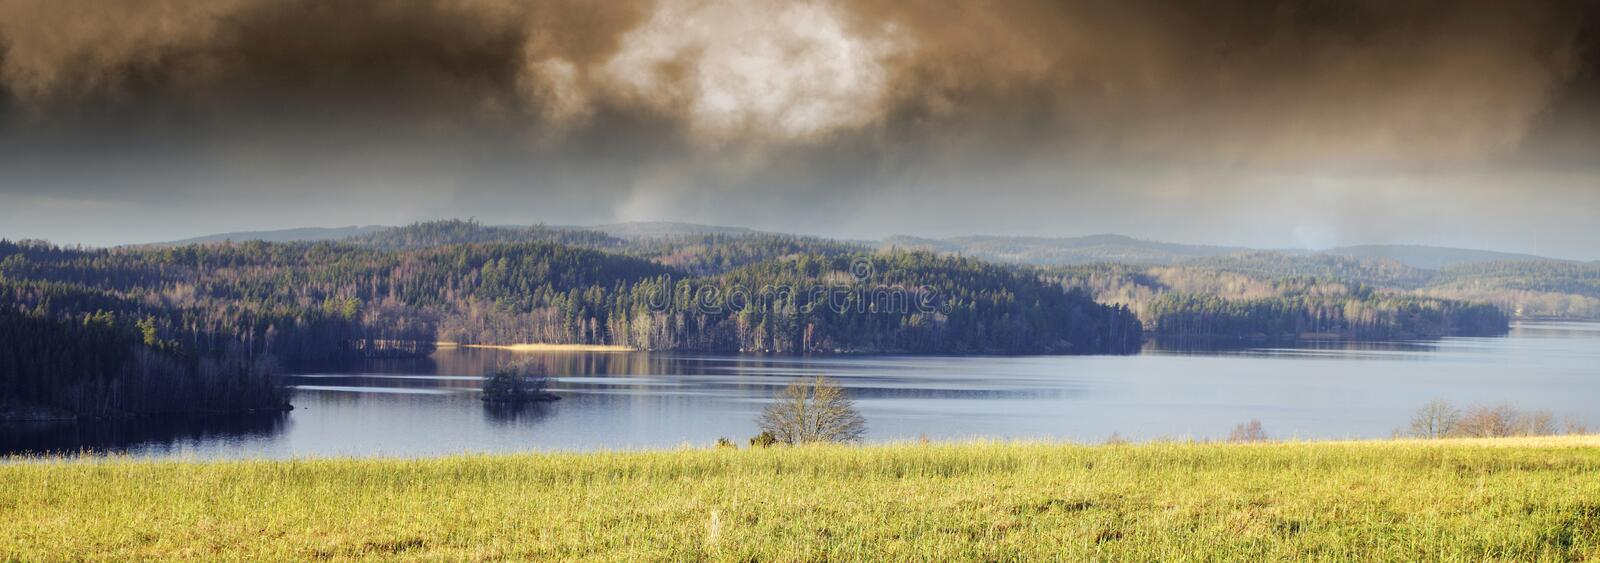 Lake Scenery And Landscape Stock Photography